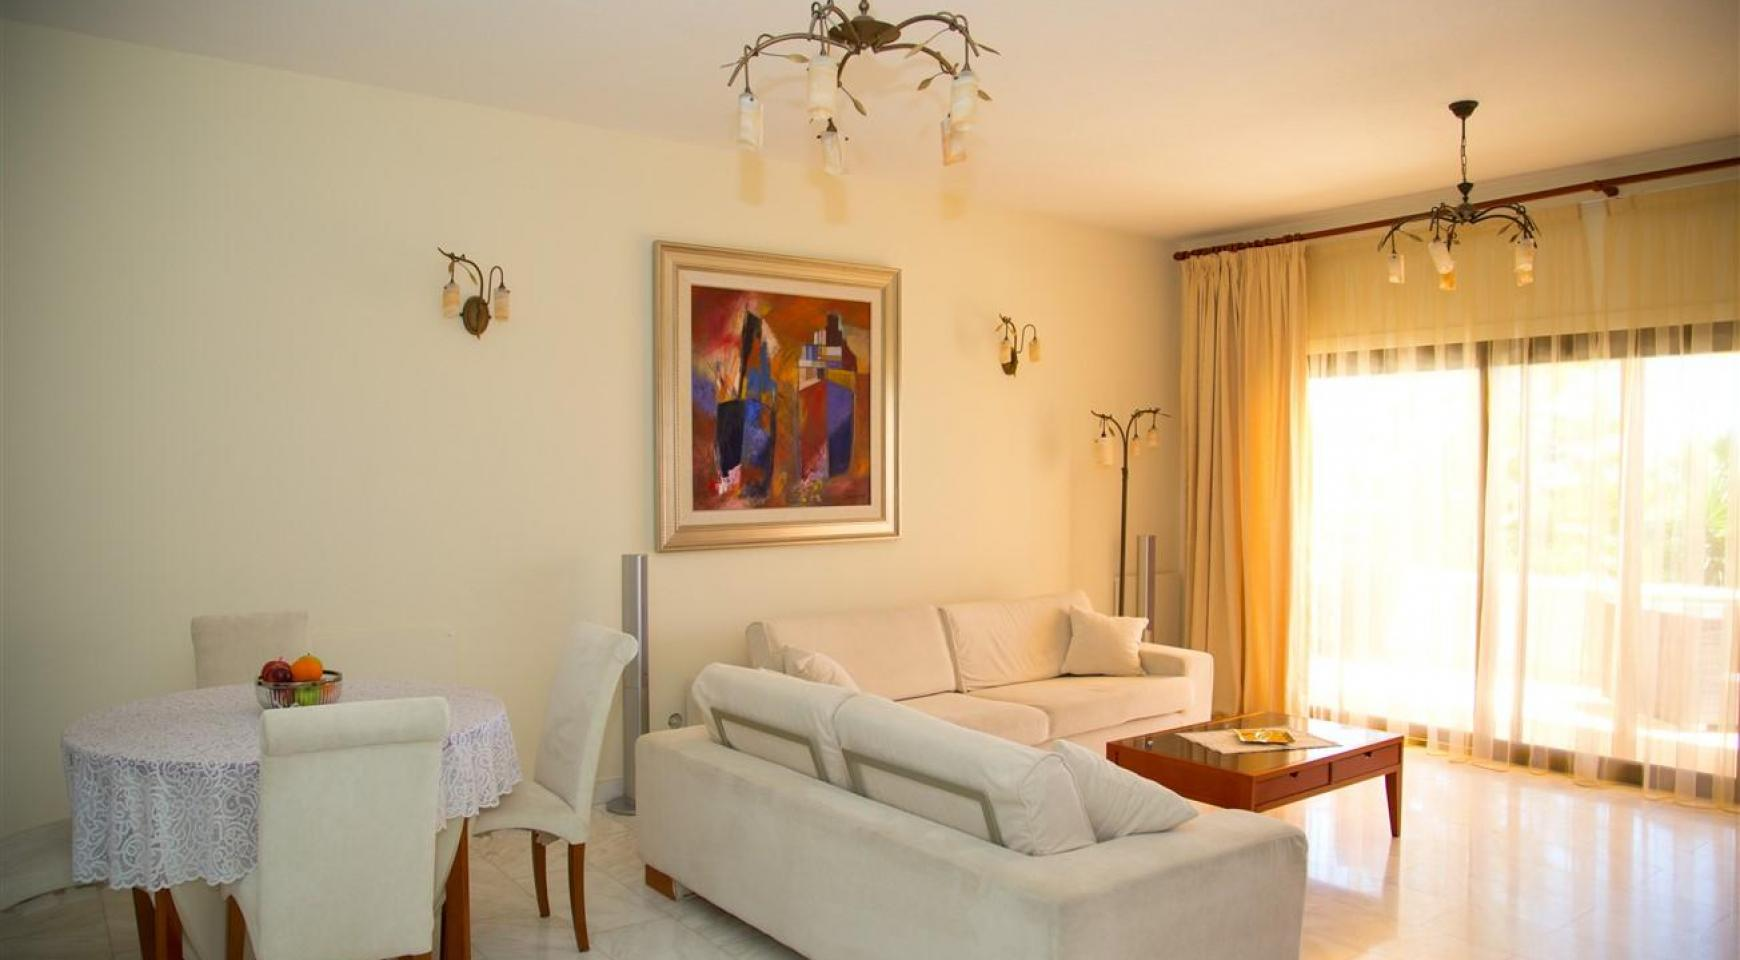 3 Bedroom Apartment in Thera Complex by the Sea - 31